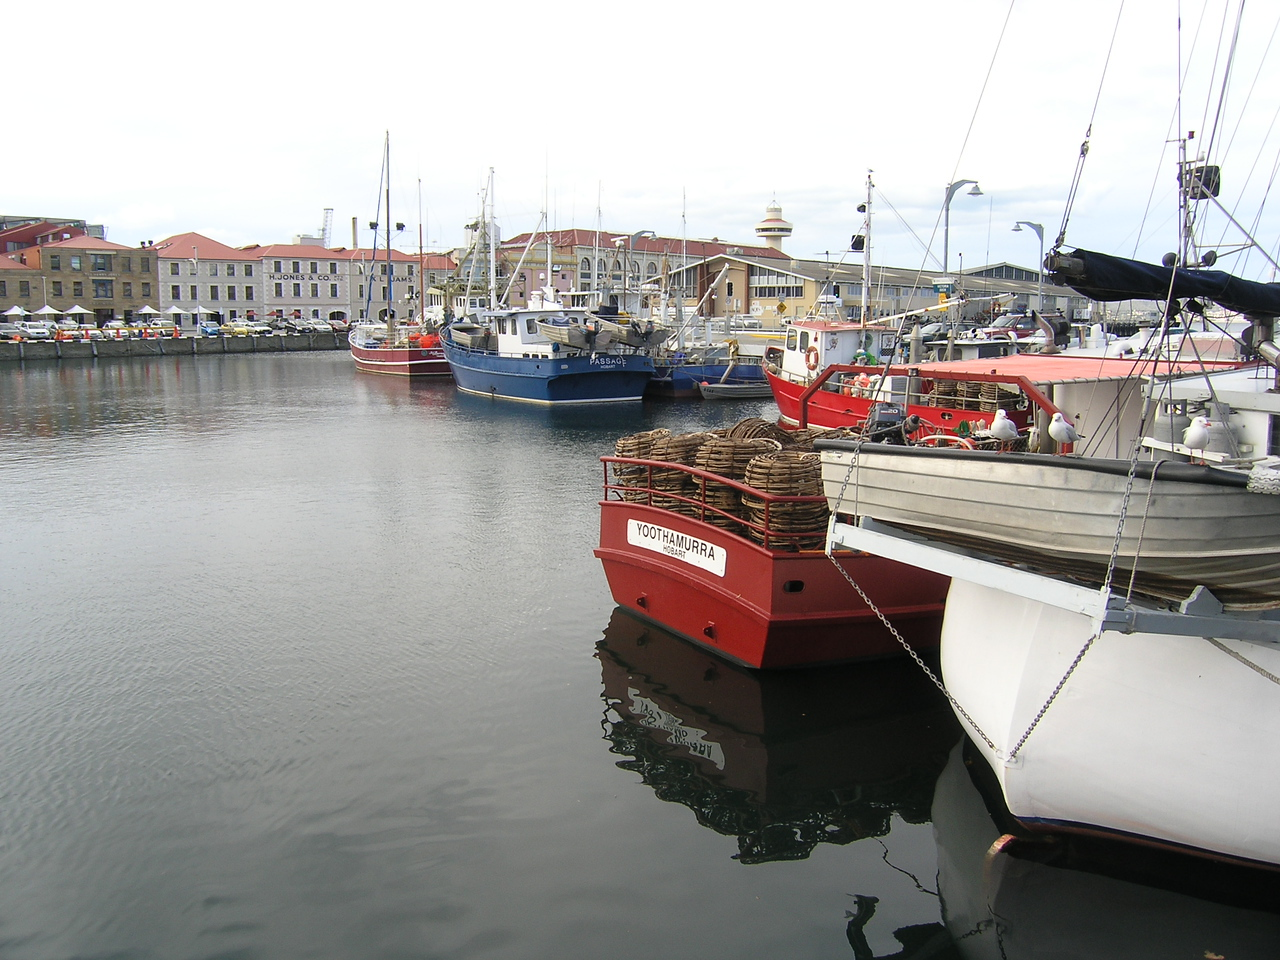 The docks at Hobart